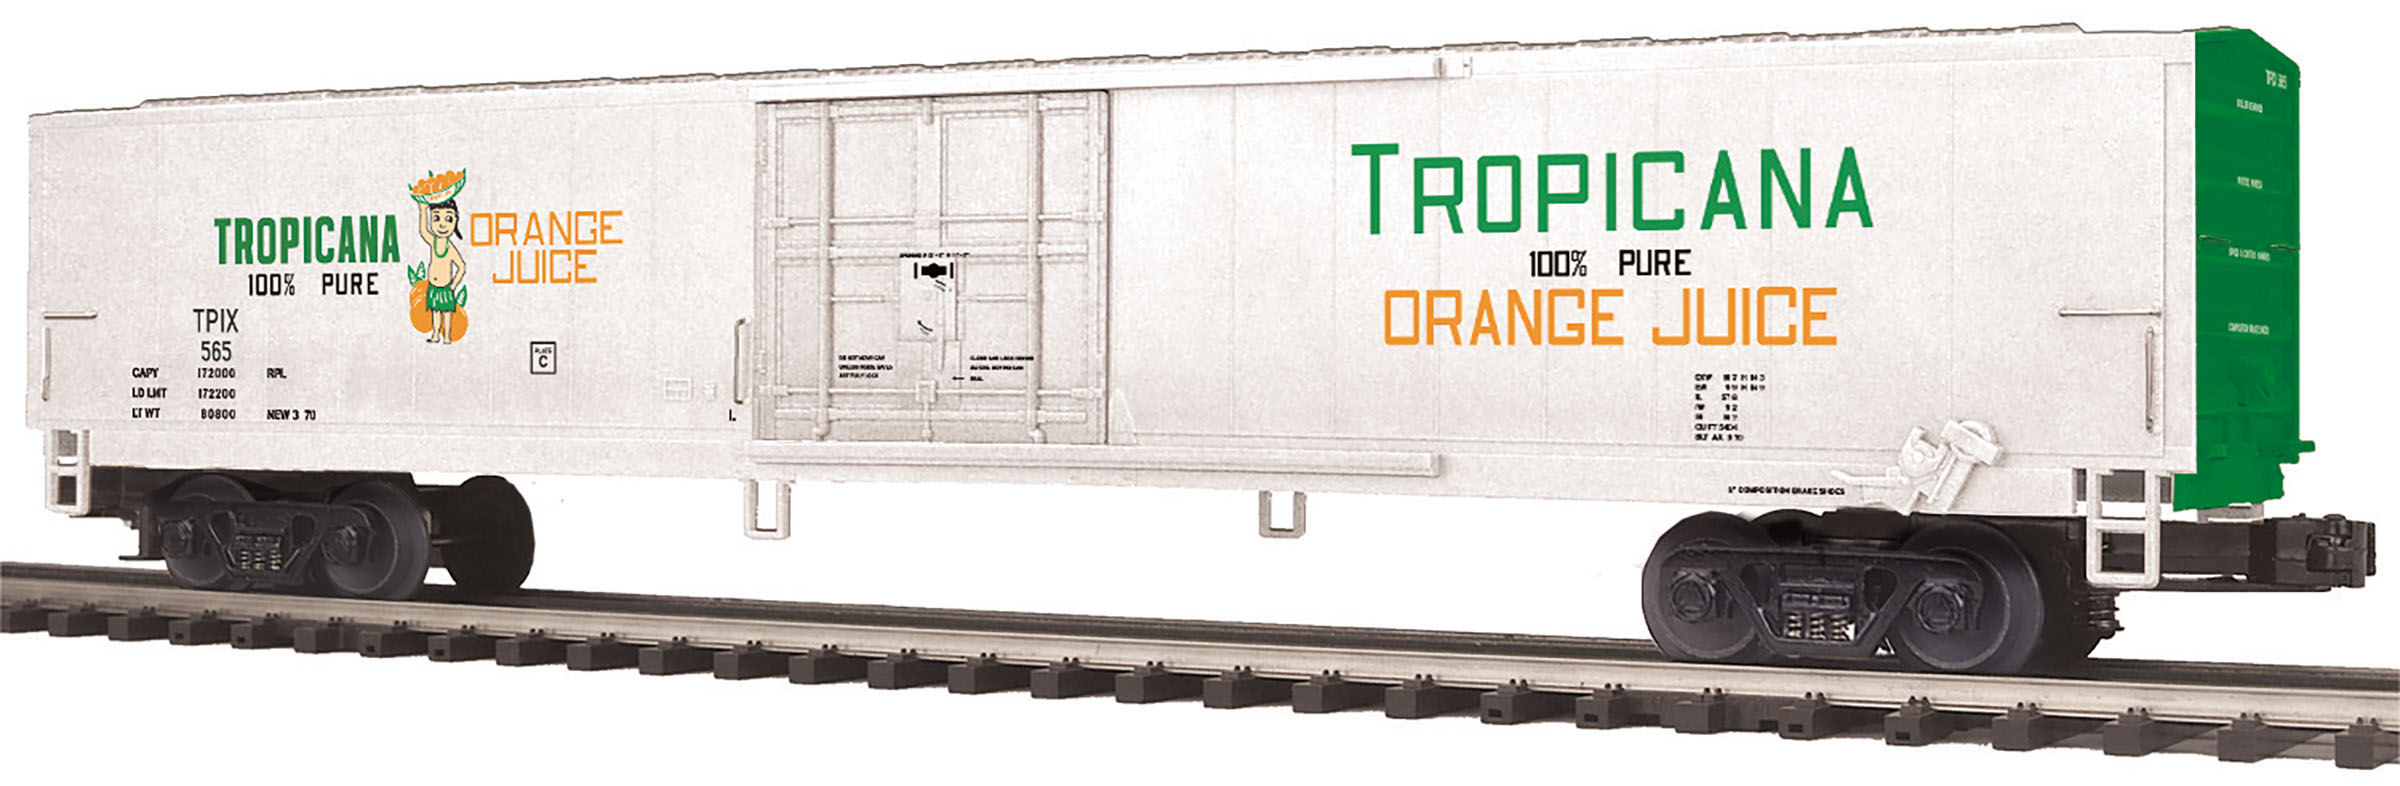 MTH2094431 MTH Electric Trains O 60' Reefer Tropicana 656 507-2094431